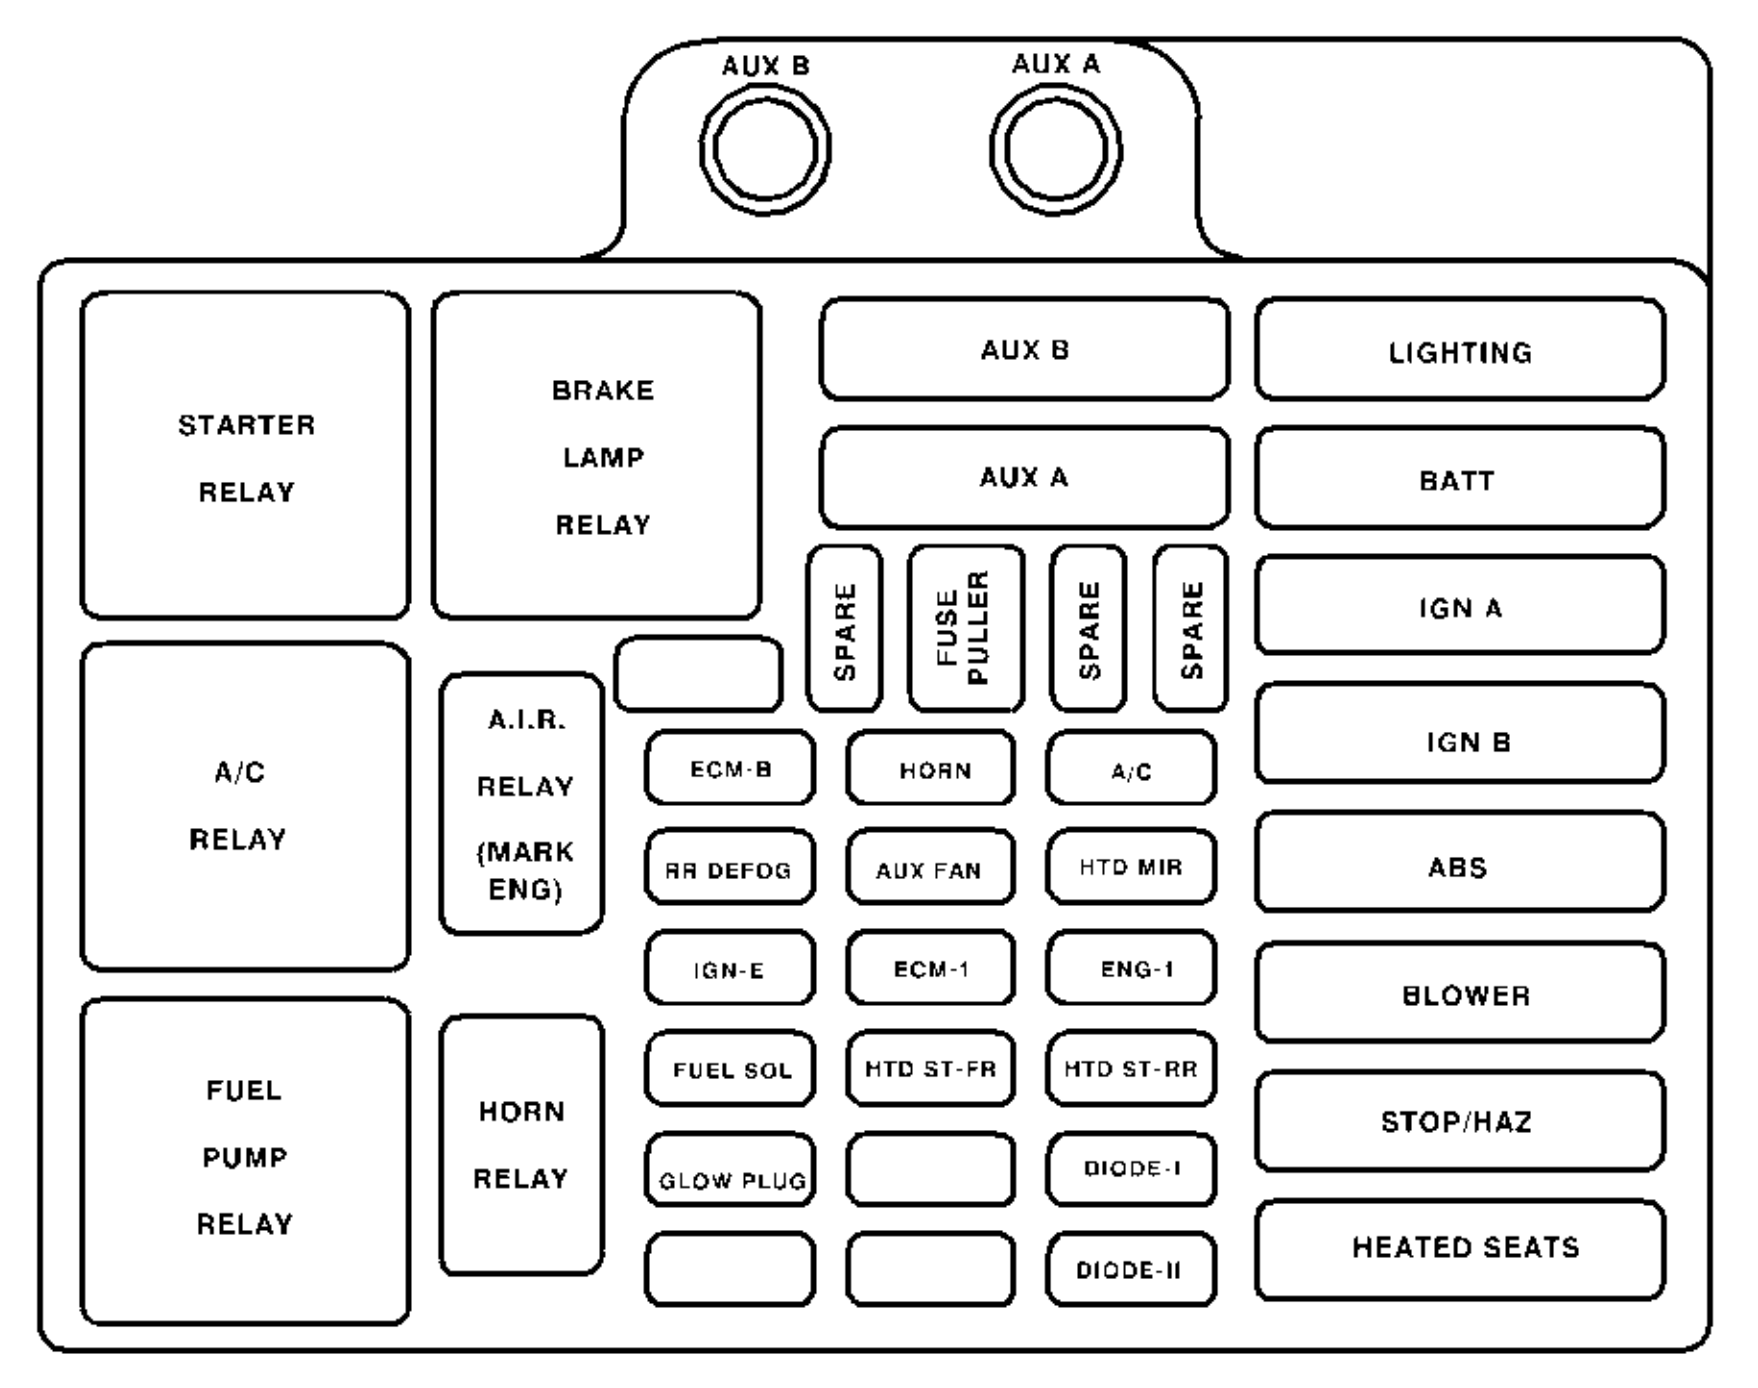 hight resolution of 94 chevy cavalier fuse box diagram image details wiring diagram center fuse box diagram 1994 chevy